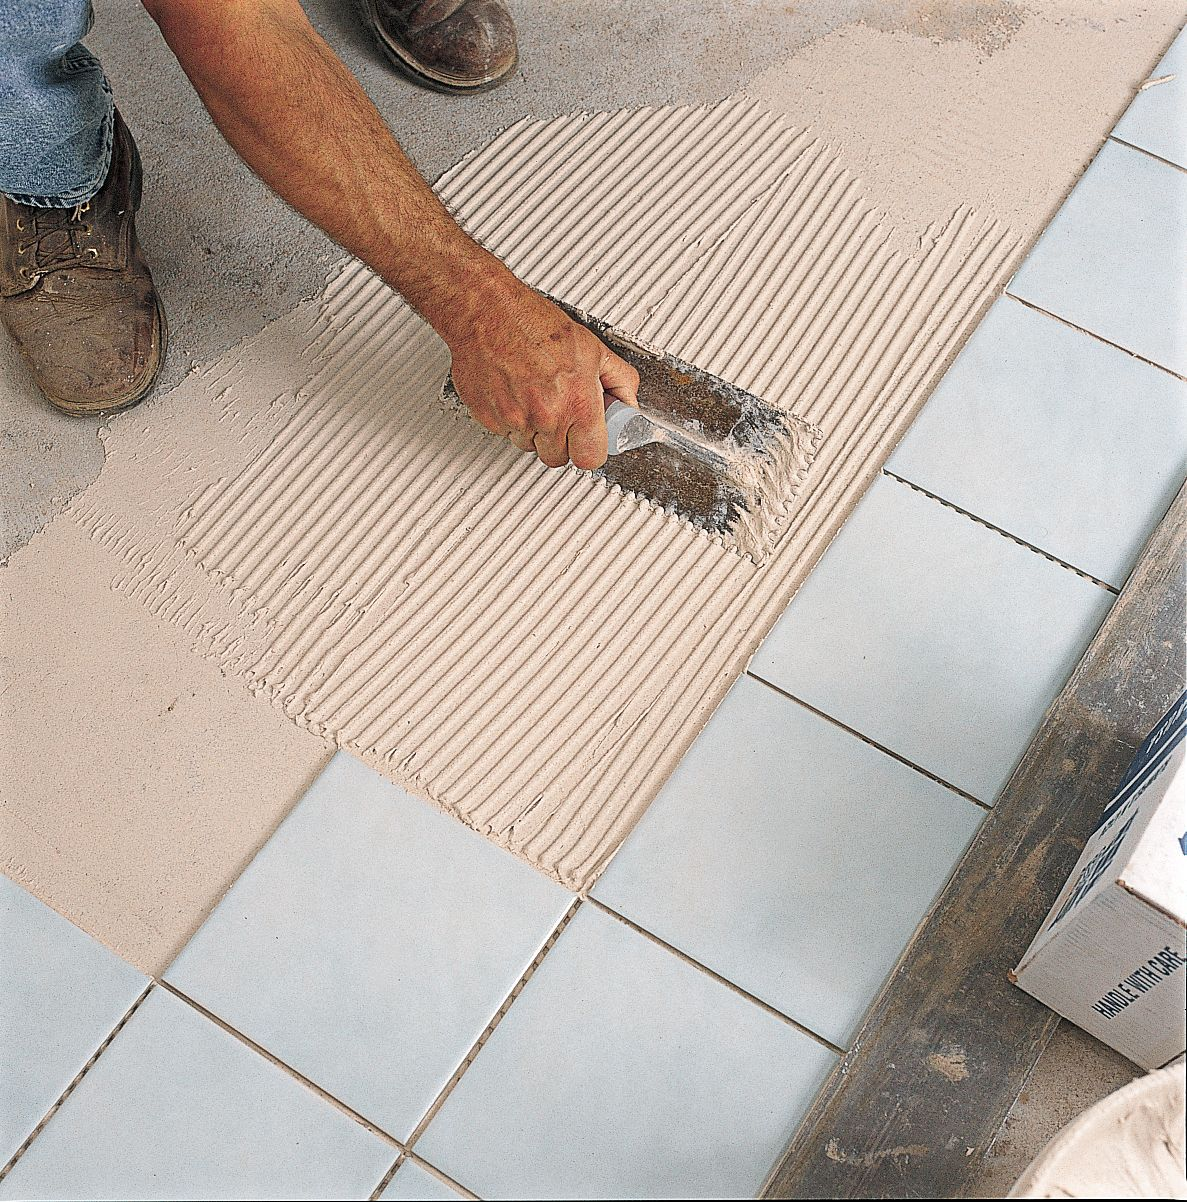 The Simple Secrets To Installing A Ceramic Tile Floor Tile Floor Diy Installing Tile Floor Diy Flooring